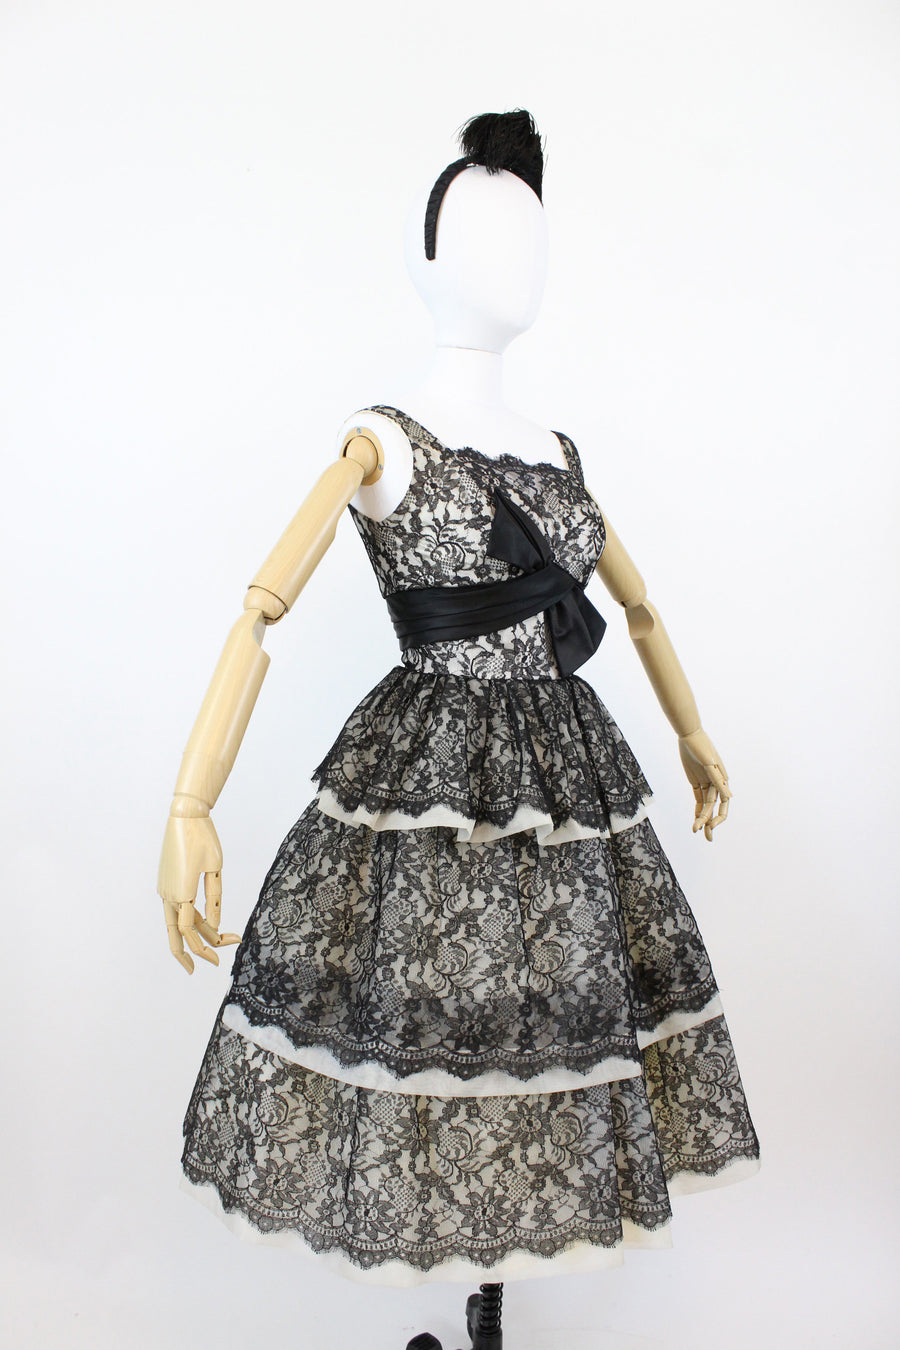 1950s Claudia Young lace and organza dress | vintage tiered cocktail dress | xs